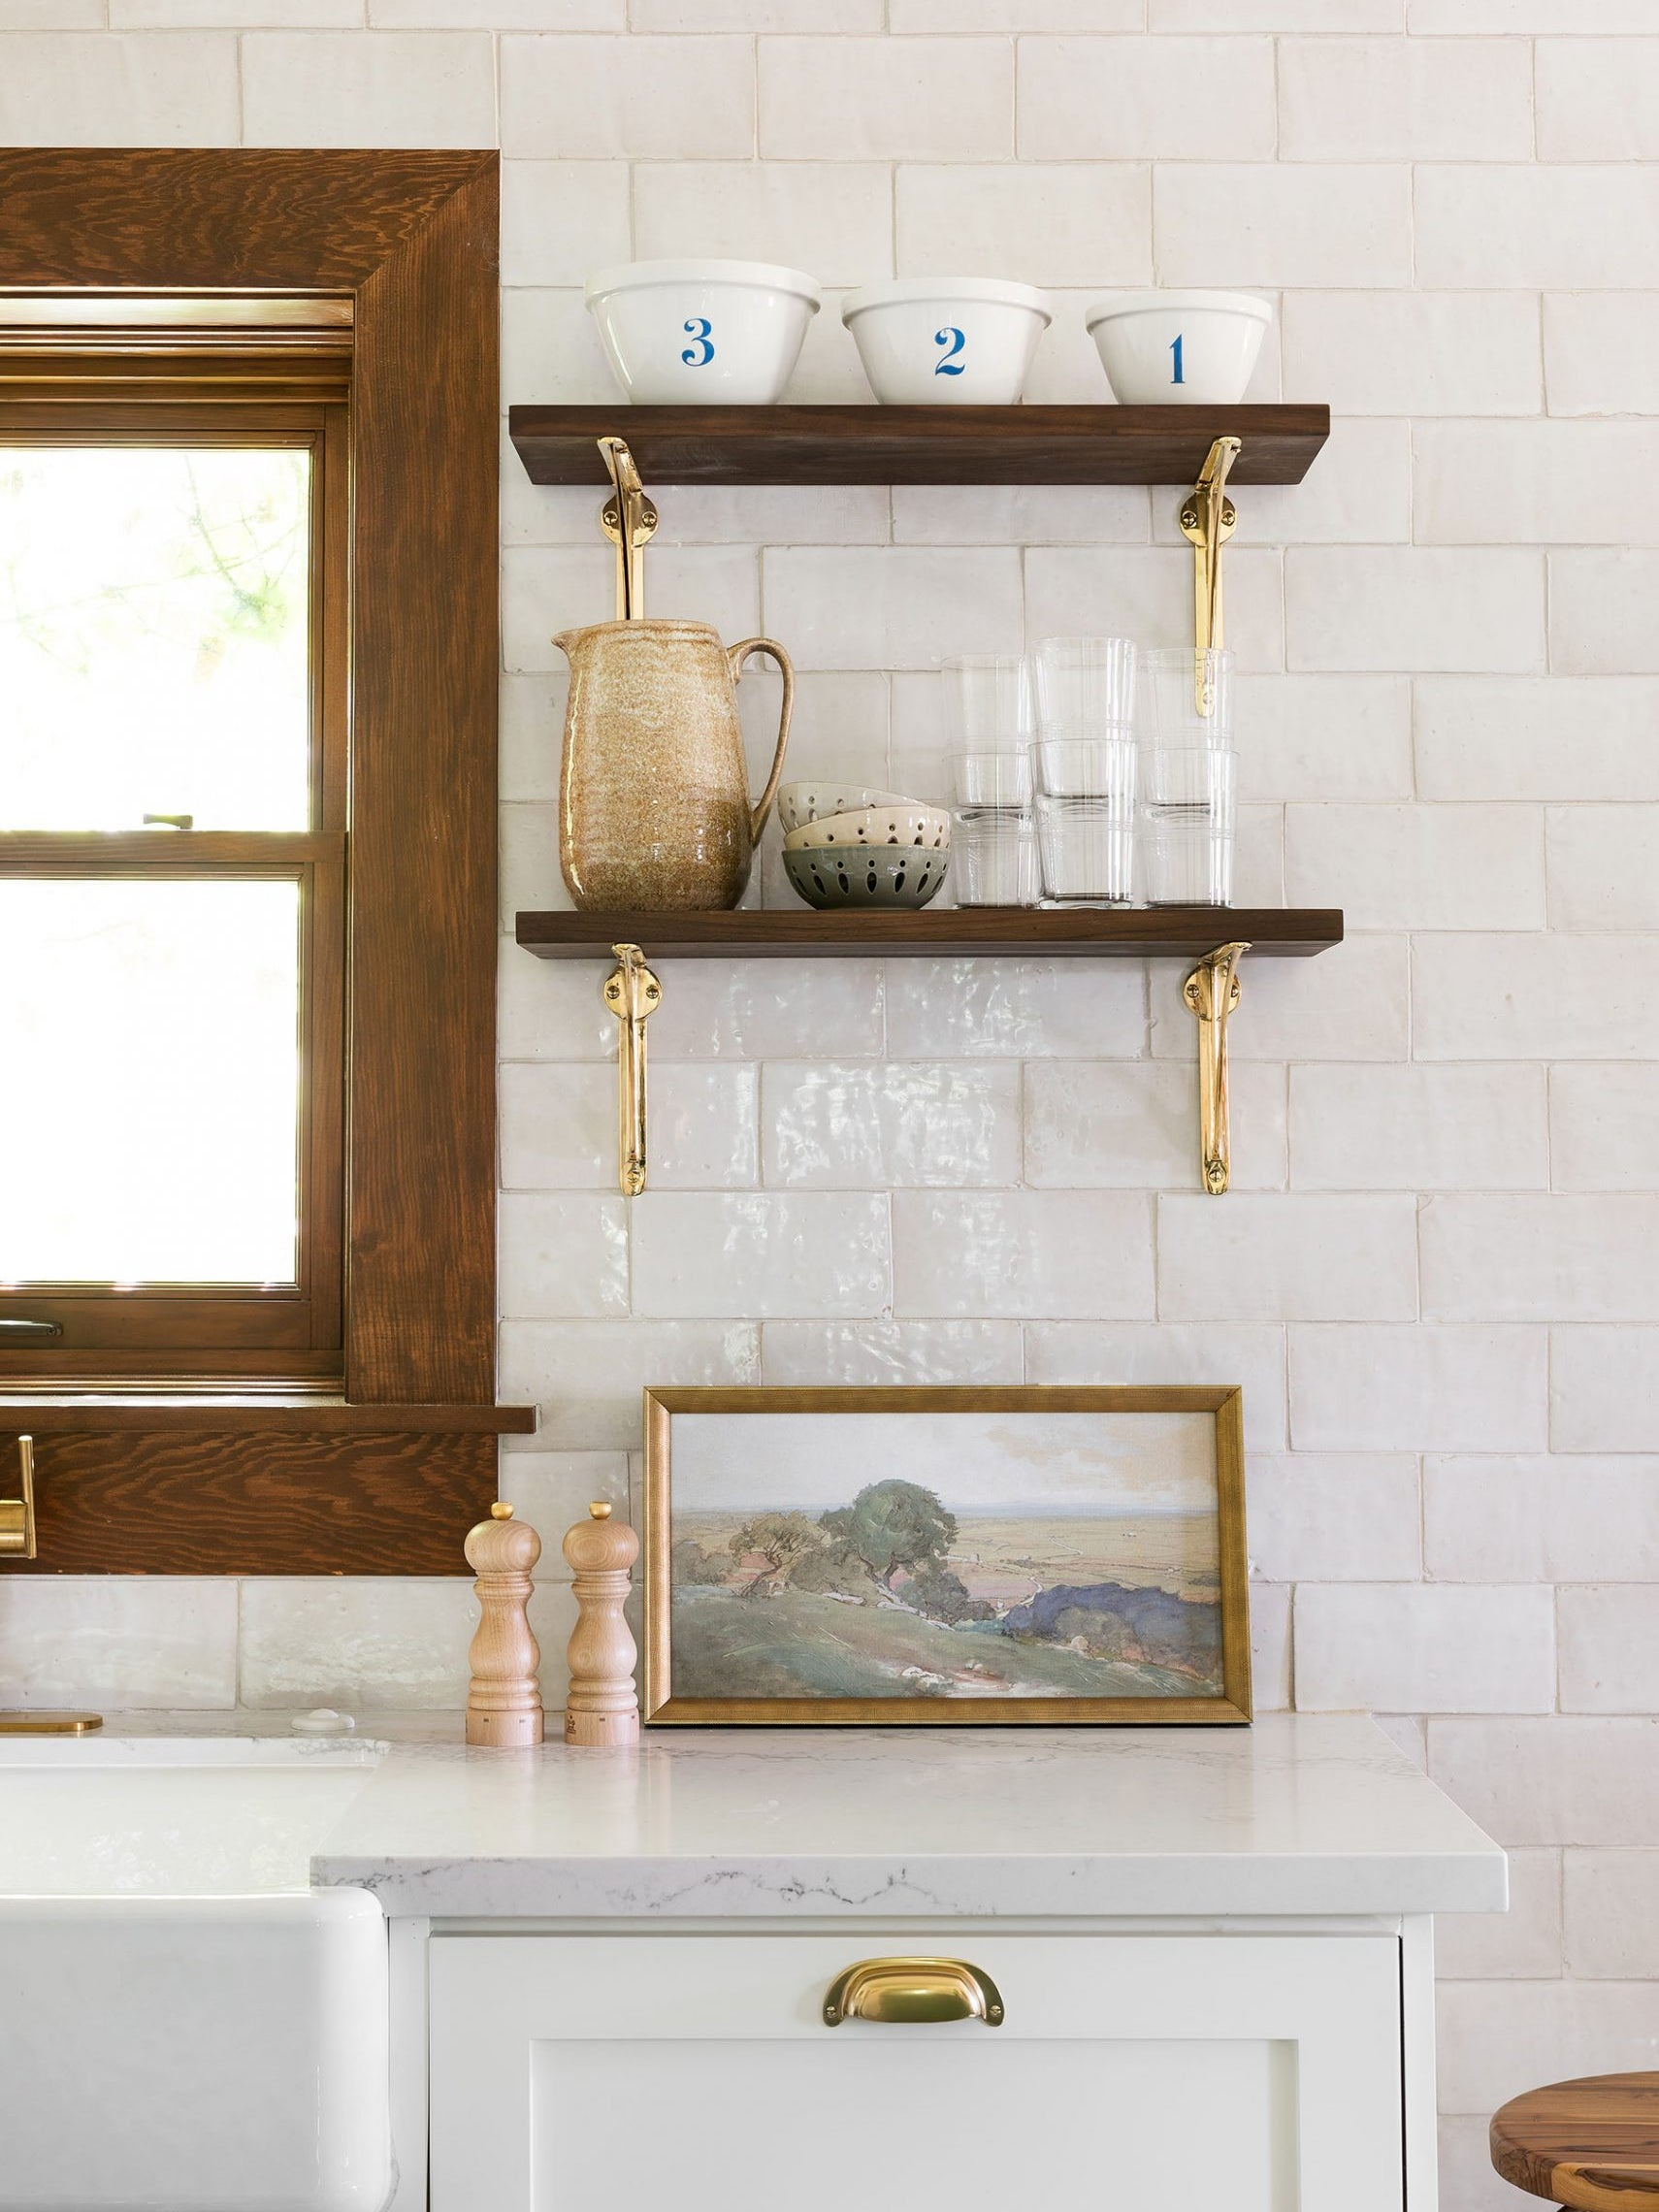 The New Way Everyone Will Be Using Carrara Marble, According to One Reno Expert